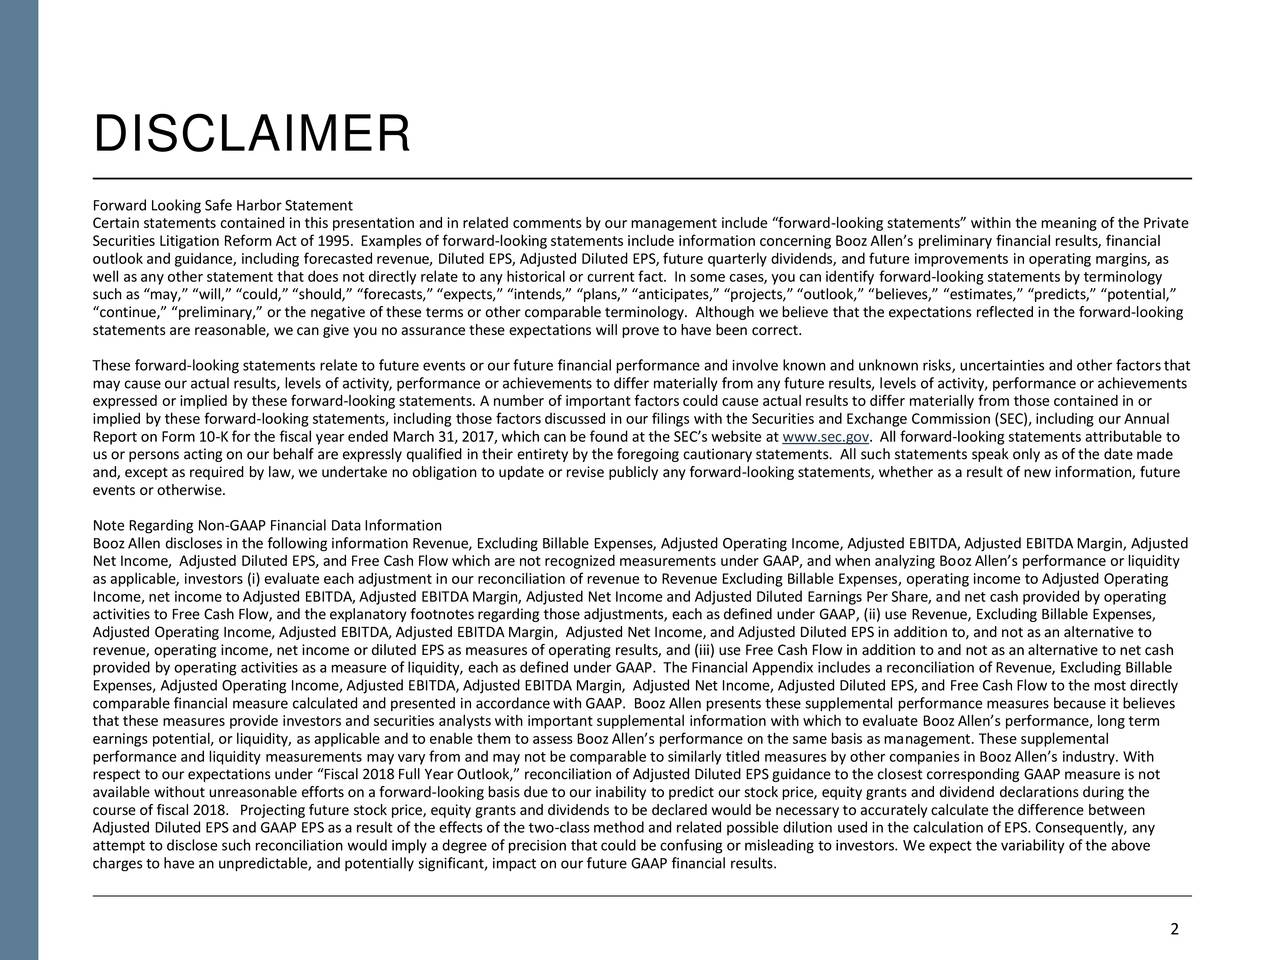 """Forward Looking Safe Harbor Statement Certain statements contained in this presentation and in related comments by our management include """"forward-looking statements"""" within the meaning of the Private Securities Litigation Reform Act of 1995. Examples of forward-looking statements include information concerning Booz Allen's preliminary financial results, financial outlook and guidance, including forecasted revenue, Diluted EPS, Adjusted Diluted EPS, future quarterly dividends, and future improvements in operating margins, as well as any other statement that does not directly relate to any historical or current fact. In some cases, you canidentify forward-looking statements by terminology such as """"may,"""" """"will,"""" """"could,"""" """"should,"""" """"forecasts,"""" """"expects,"""" """"intends,"""" """"plans,"""" """"anticipates,"""" """"projects,"""" """"outlook,"""" """"believes,"""" """"estimates,"""" """"predicts,"""" """"potential,"""" """"continue,"""" """"preliminary,"""" or the negative of these terms or other comparable terminology. Although we believe that the expectations reflected in the forward-looking statements are reasonable, we can give you no assurance these expectations will prove to have been correct. These forward-looking statements relate to future events or our future financial performance and involve known and unknown risks, uncertainties and other factorsthat may cause our actual results, levels of activity, performance or achievements to differ materially from any future results, levels of activity, performance or achievements expressed or implied by these forward-looking statements. A number of important factorscould cause actual results to differ materially from those contained in or implied by these forward-looking statements, including those factorsdiscussed in our filings with the Securities and Exchange Commission (SEC), including our Annual Report on Form 10-Kfor the fiscal year ended March 31, 2017, which canbe found at the SEC's website at www.sec.gov. All forward-looking statements attributable to us or persons acting on our"""